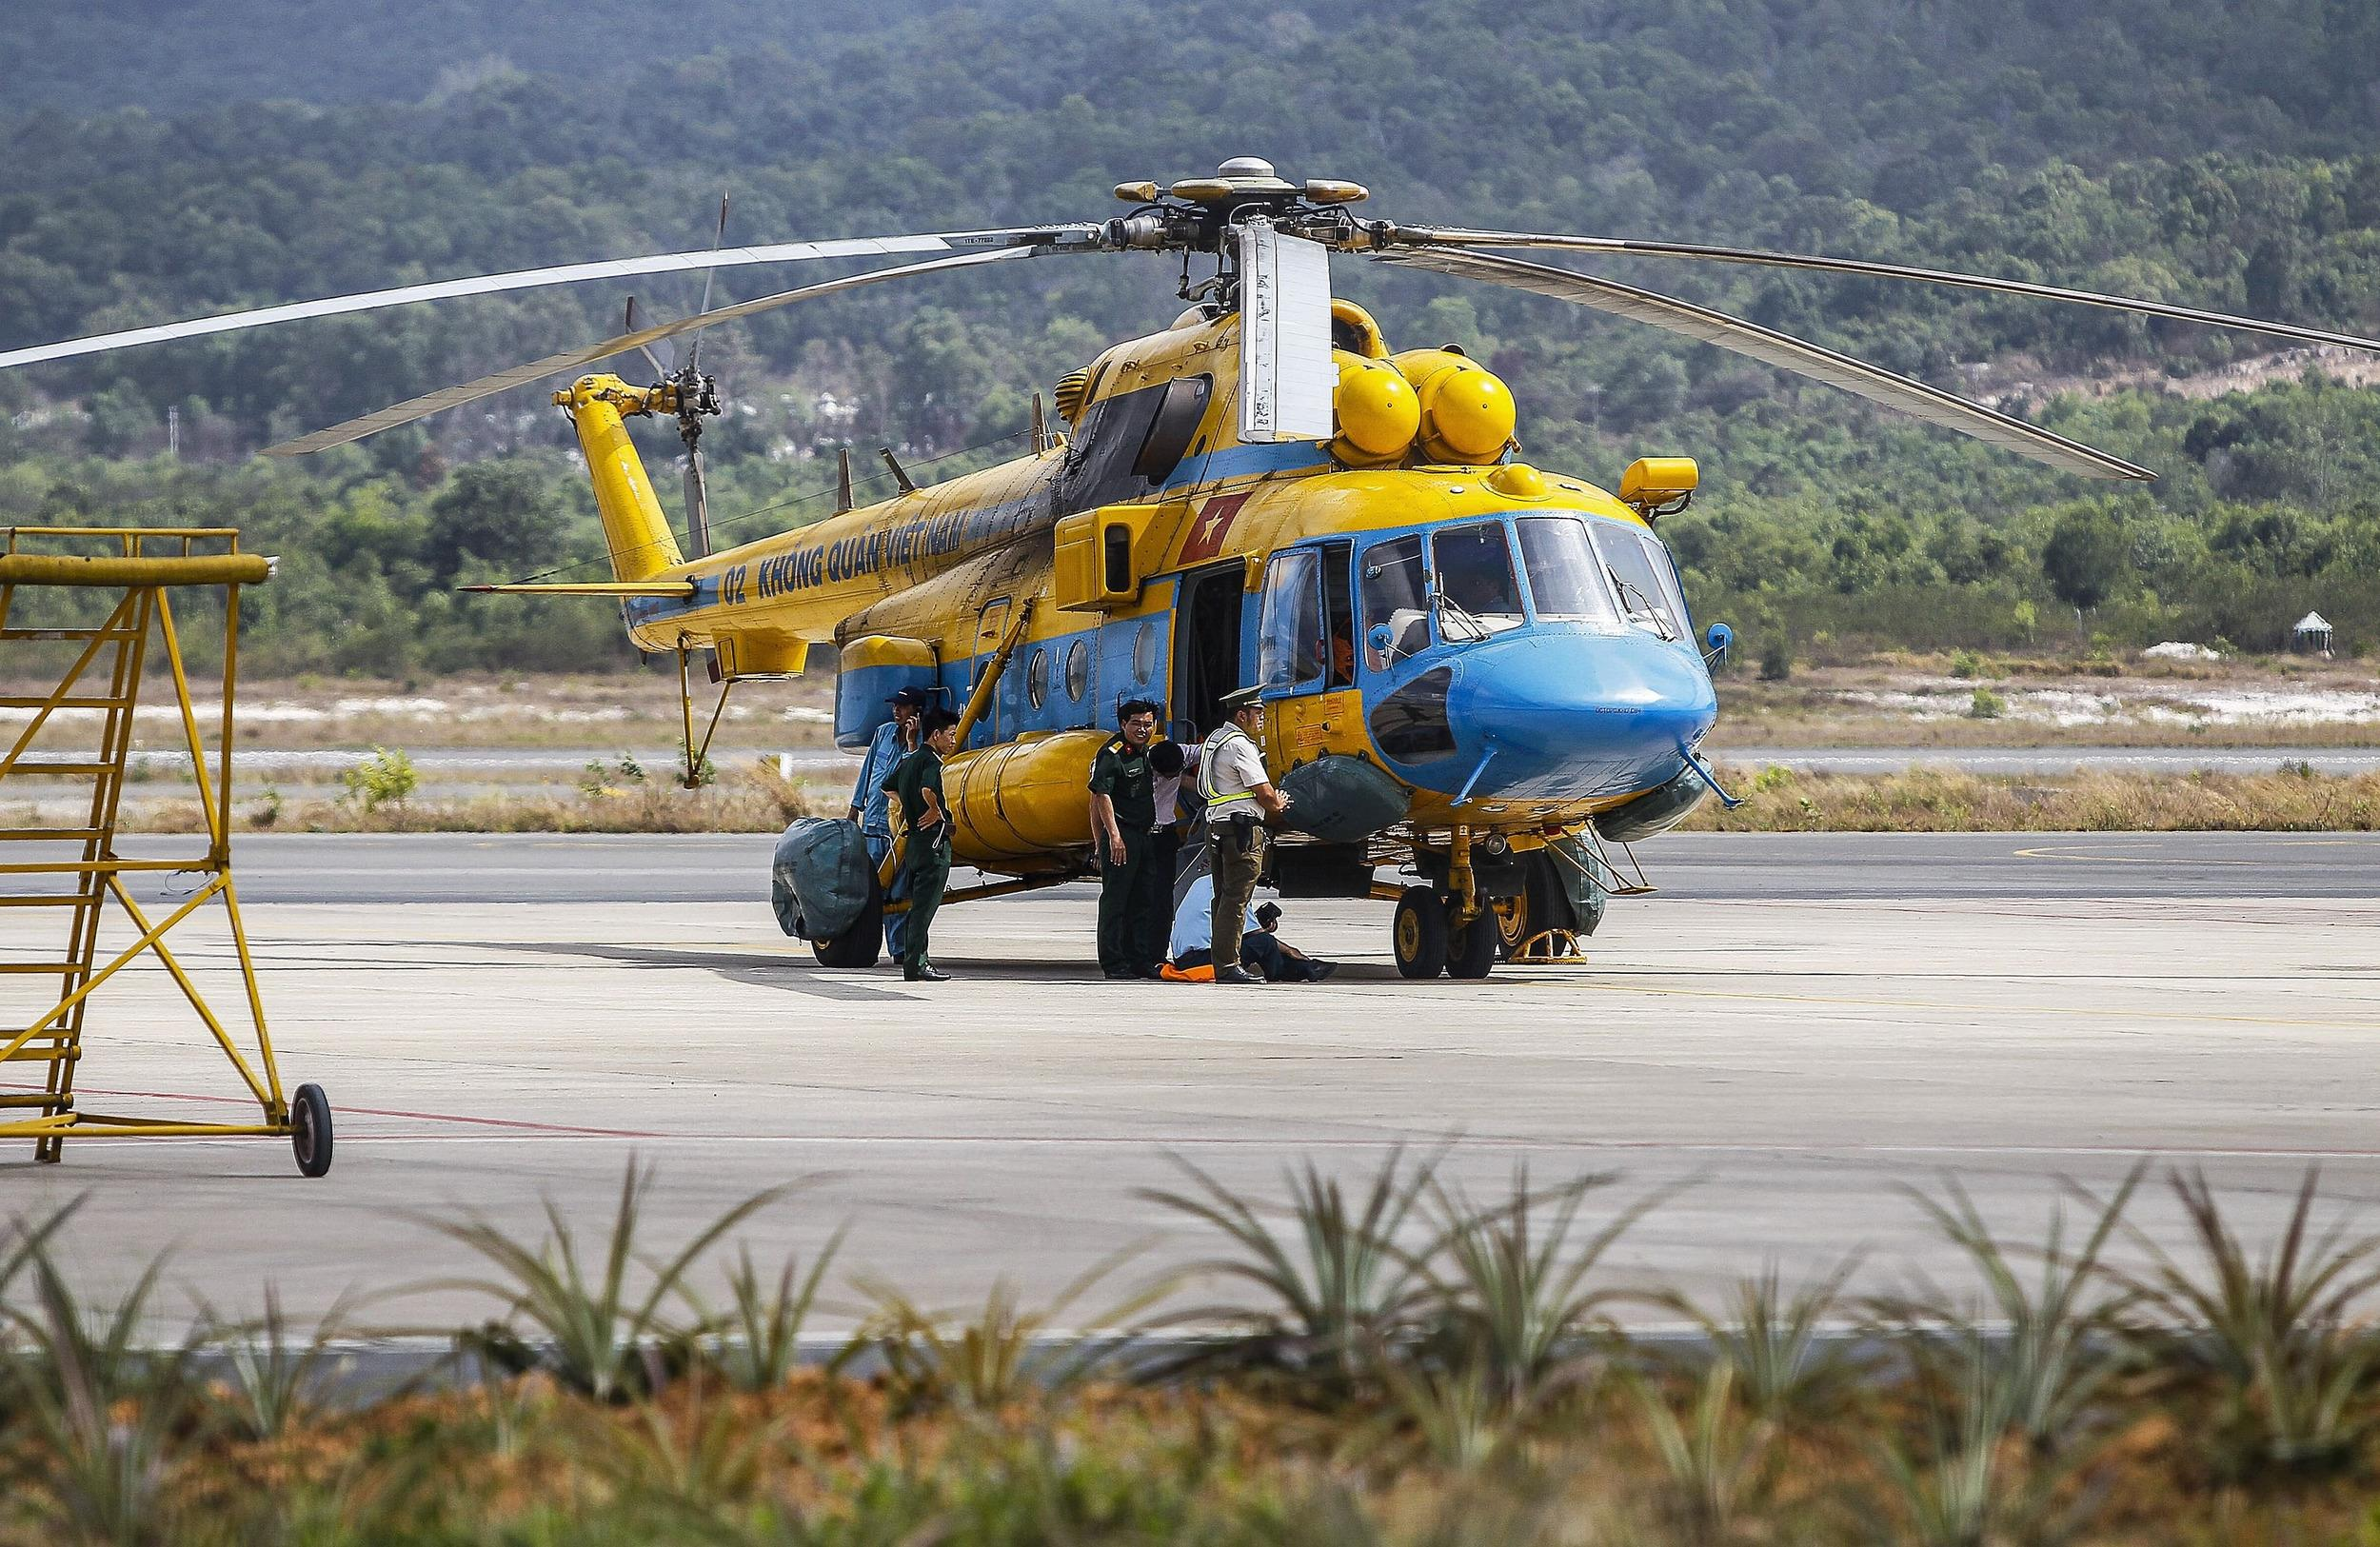 Image: Vietnamese helicopter prepped to search for missing jet